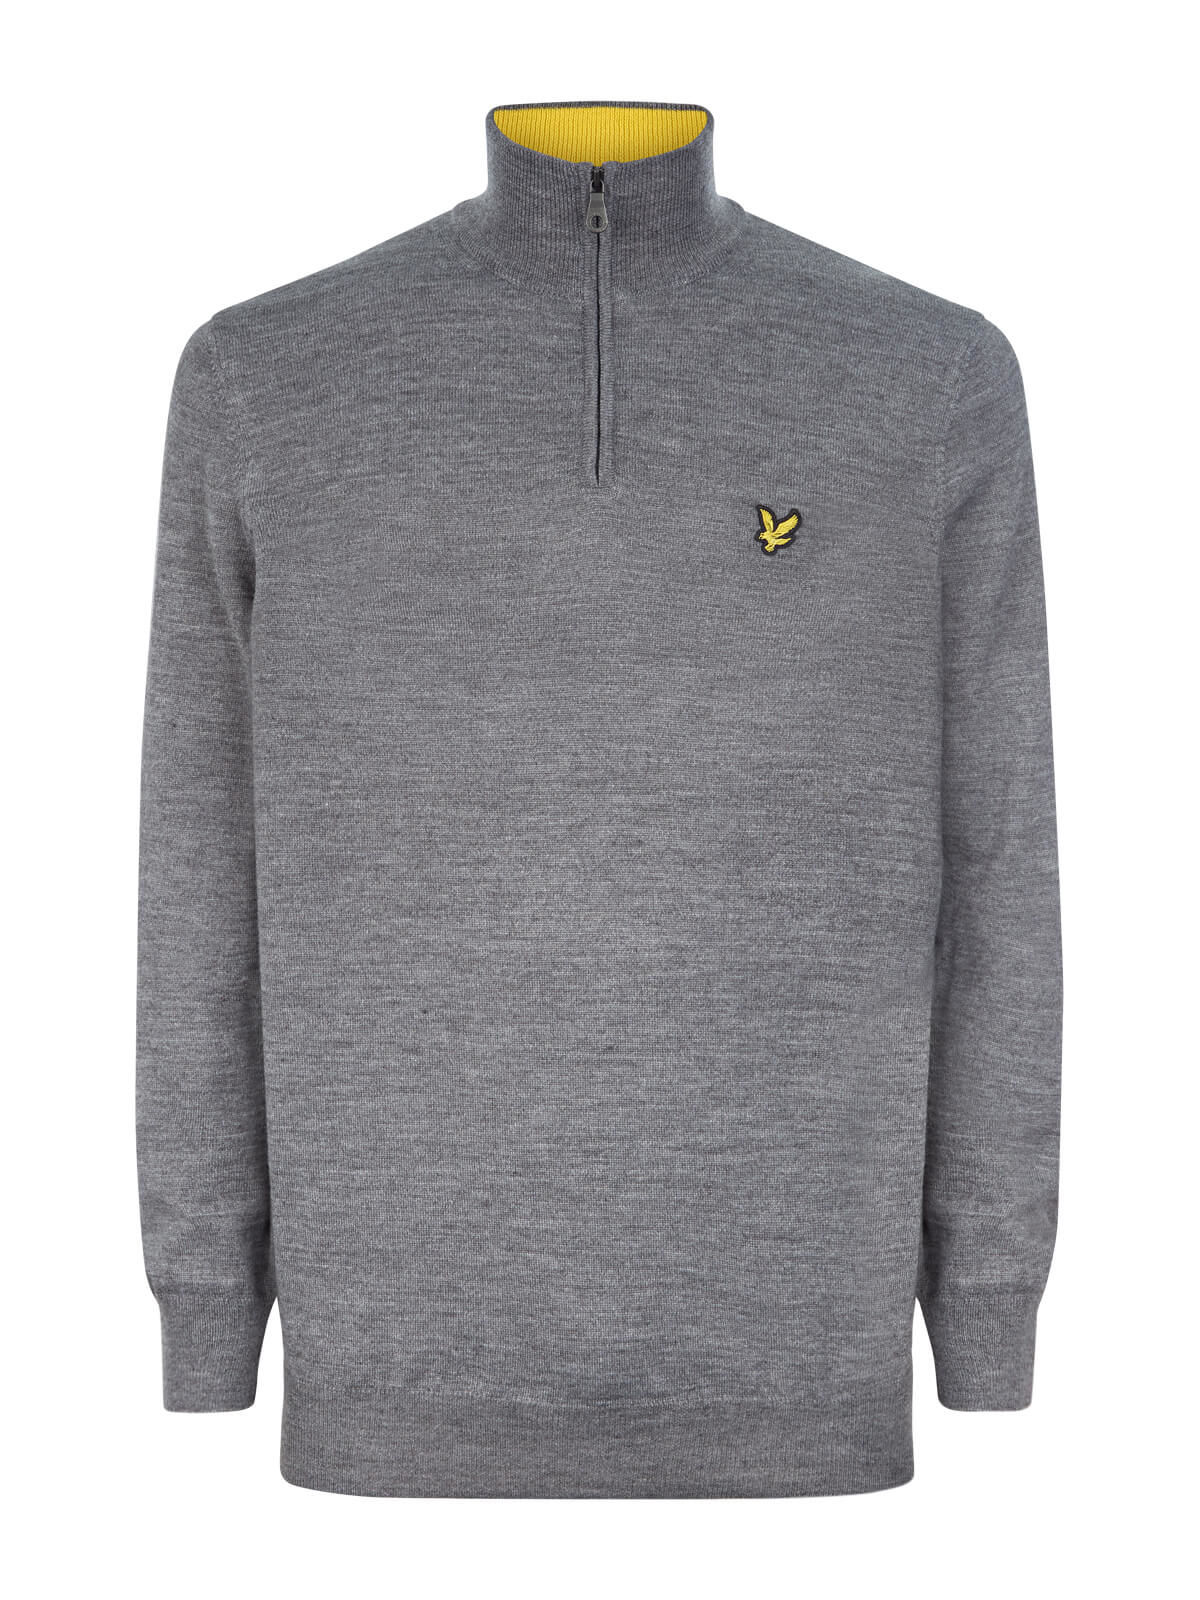 Lyle and Scott Mid Grey Marl Sands 1/4 Zip Pullover